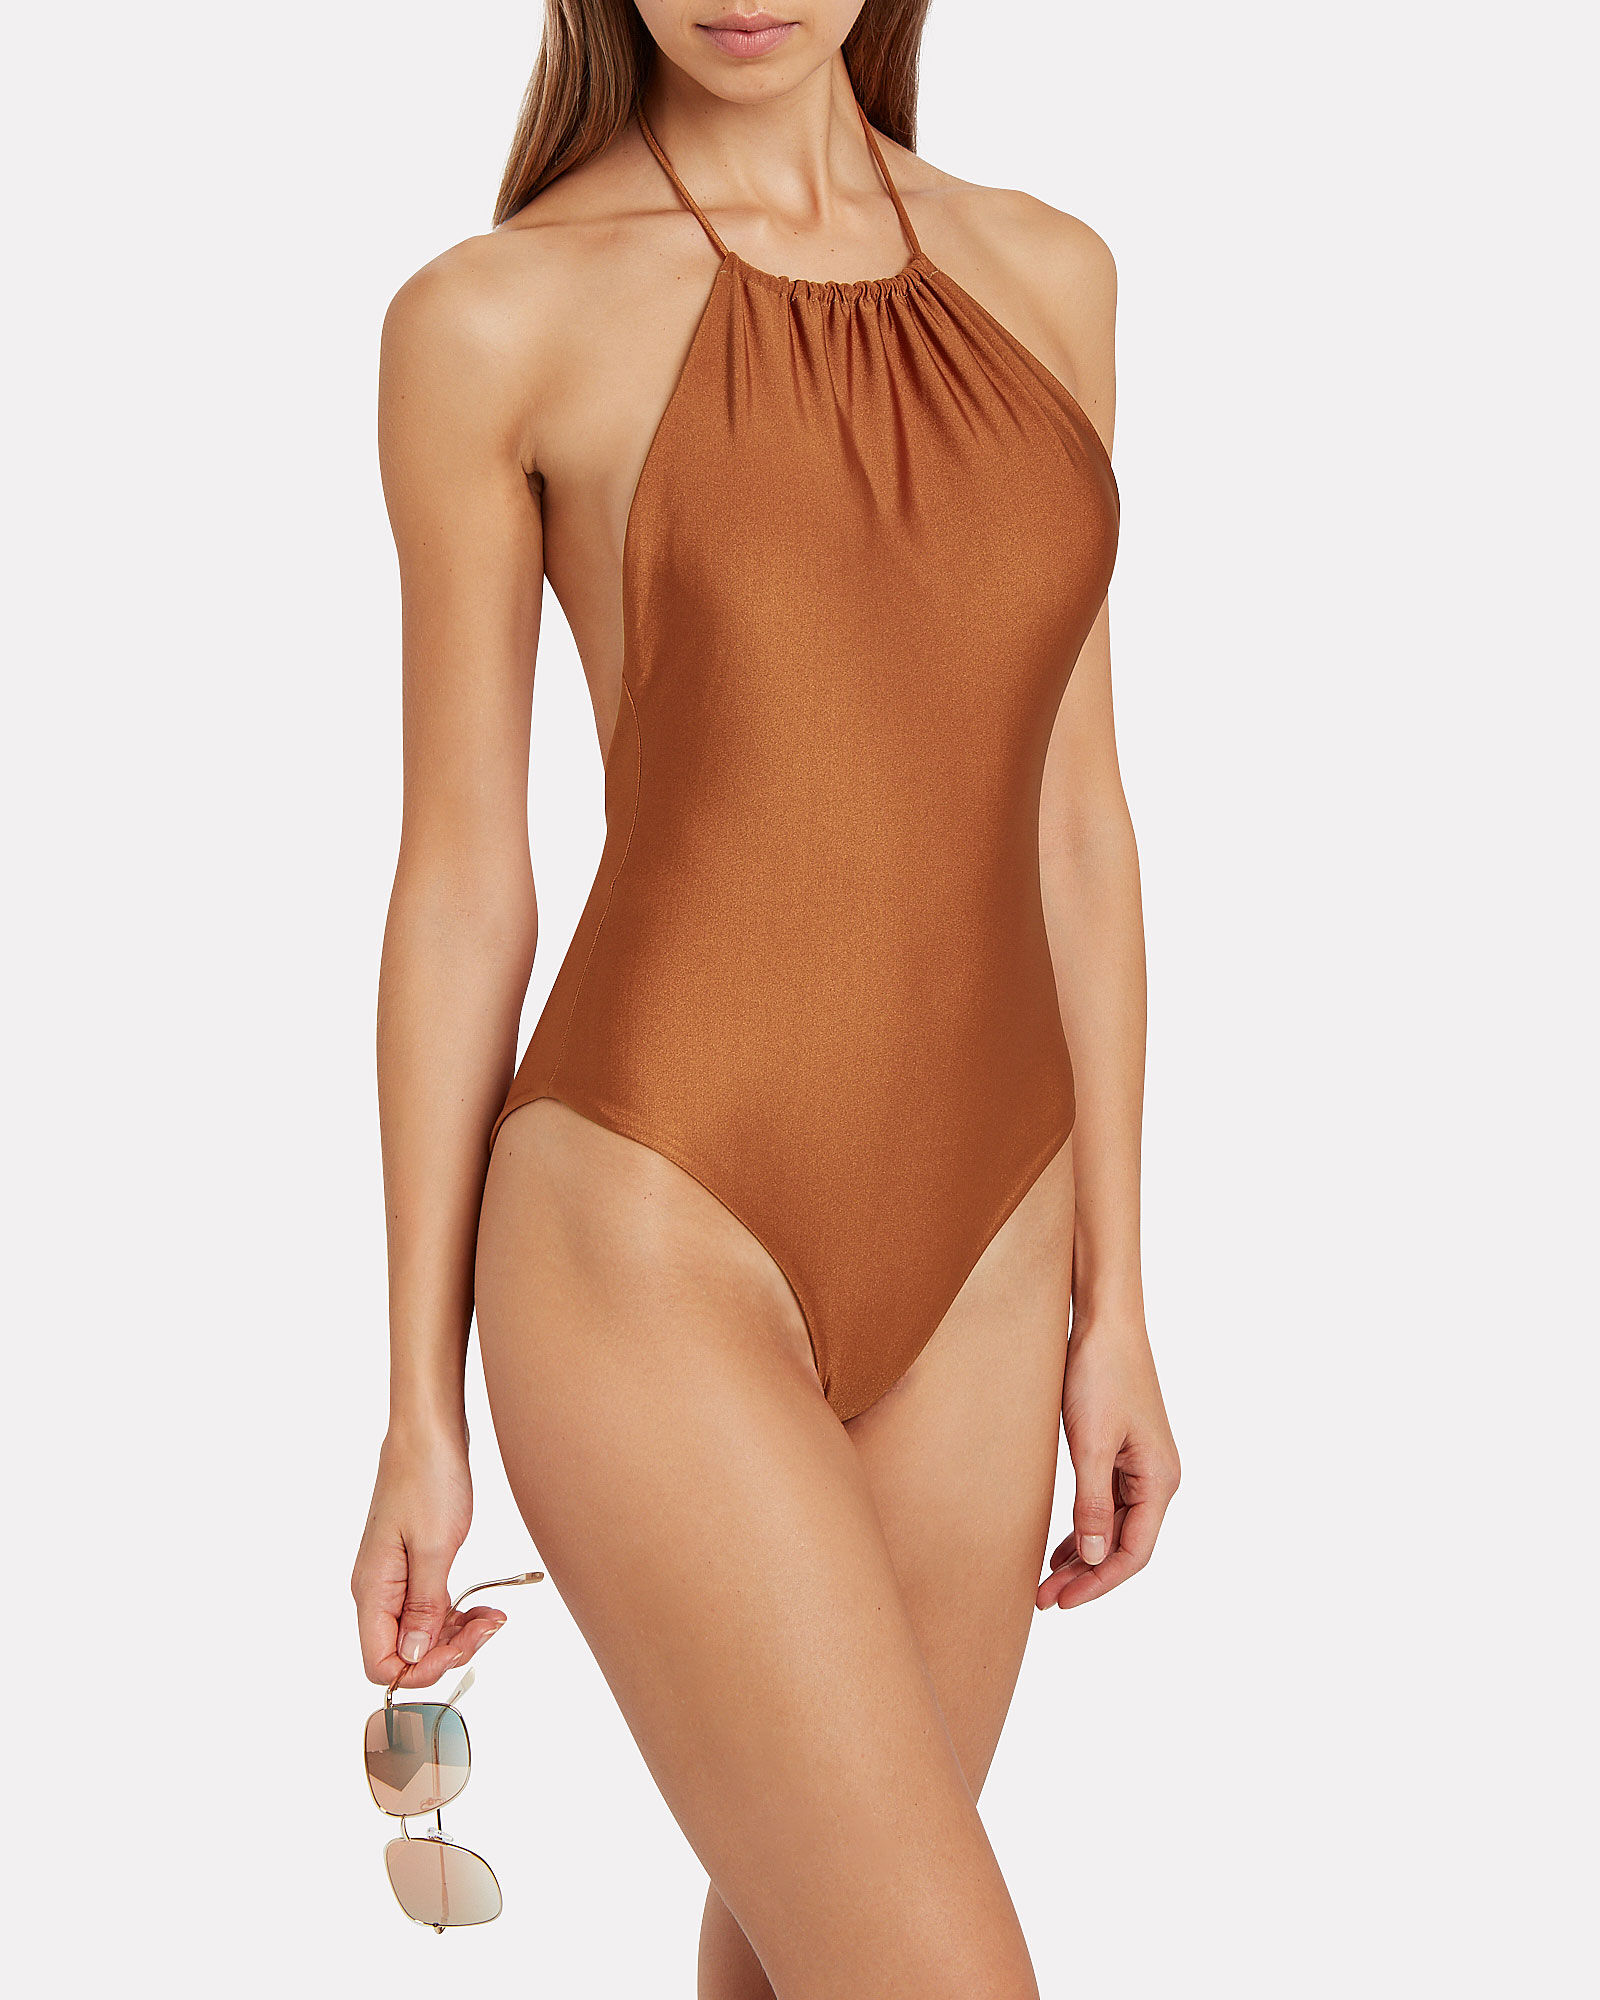 Kate One-Piece Swimsuit, COPPER, hi-res